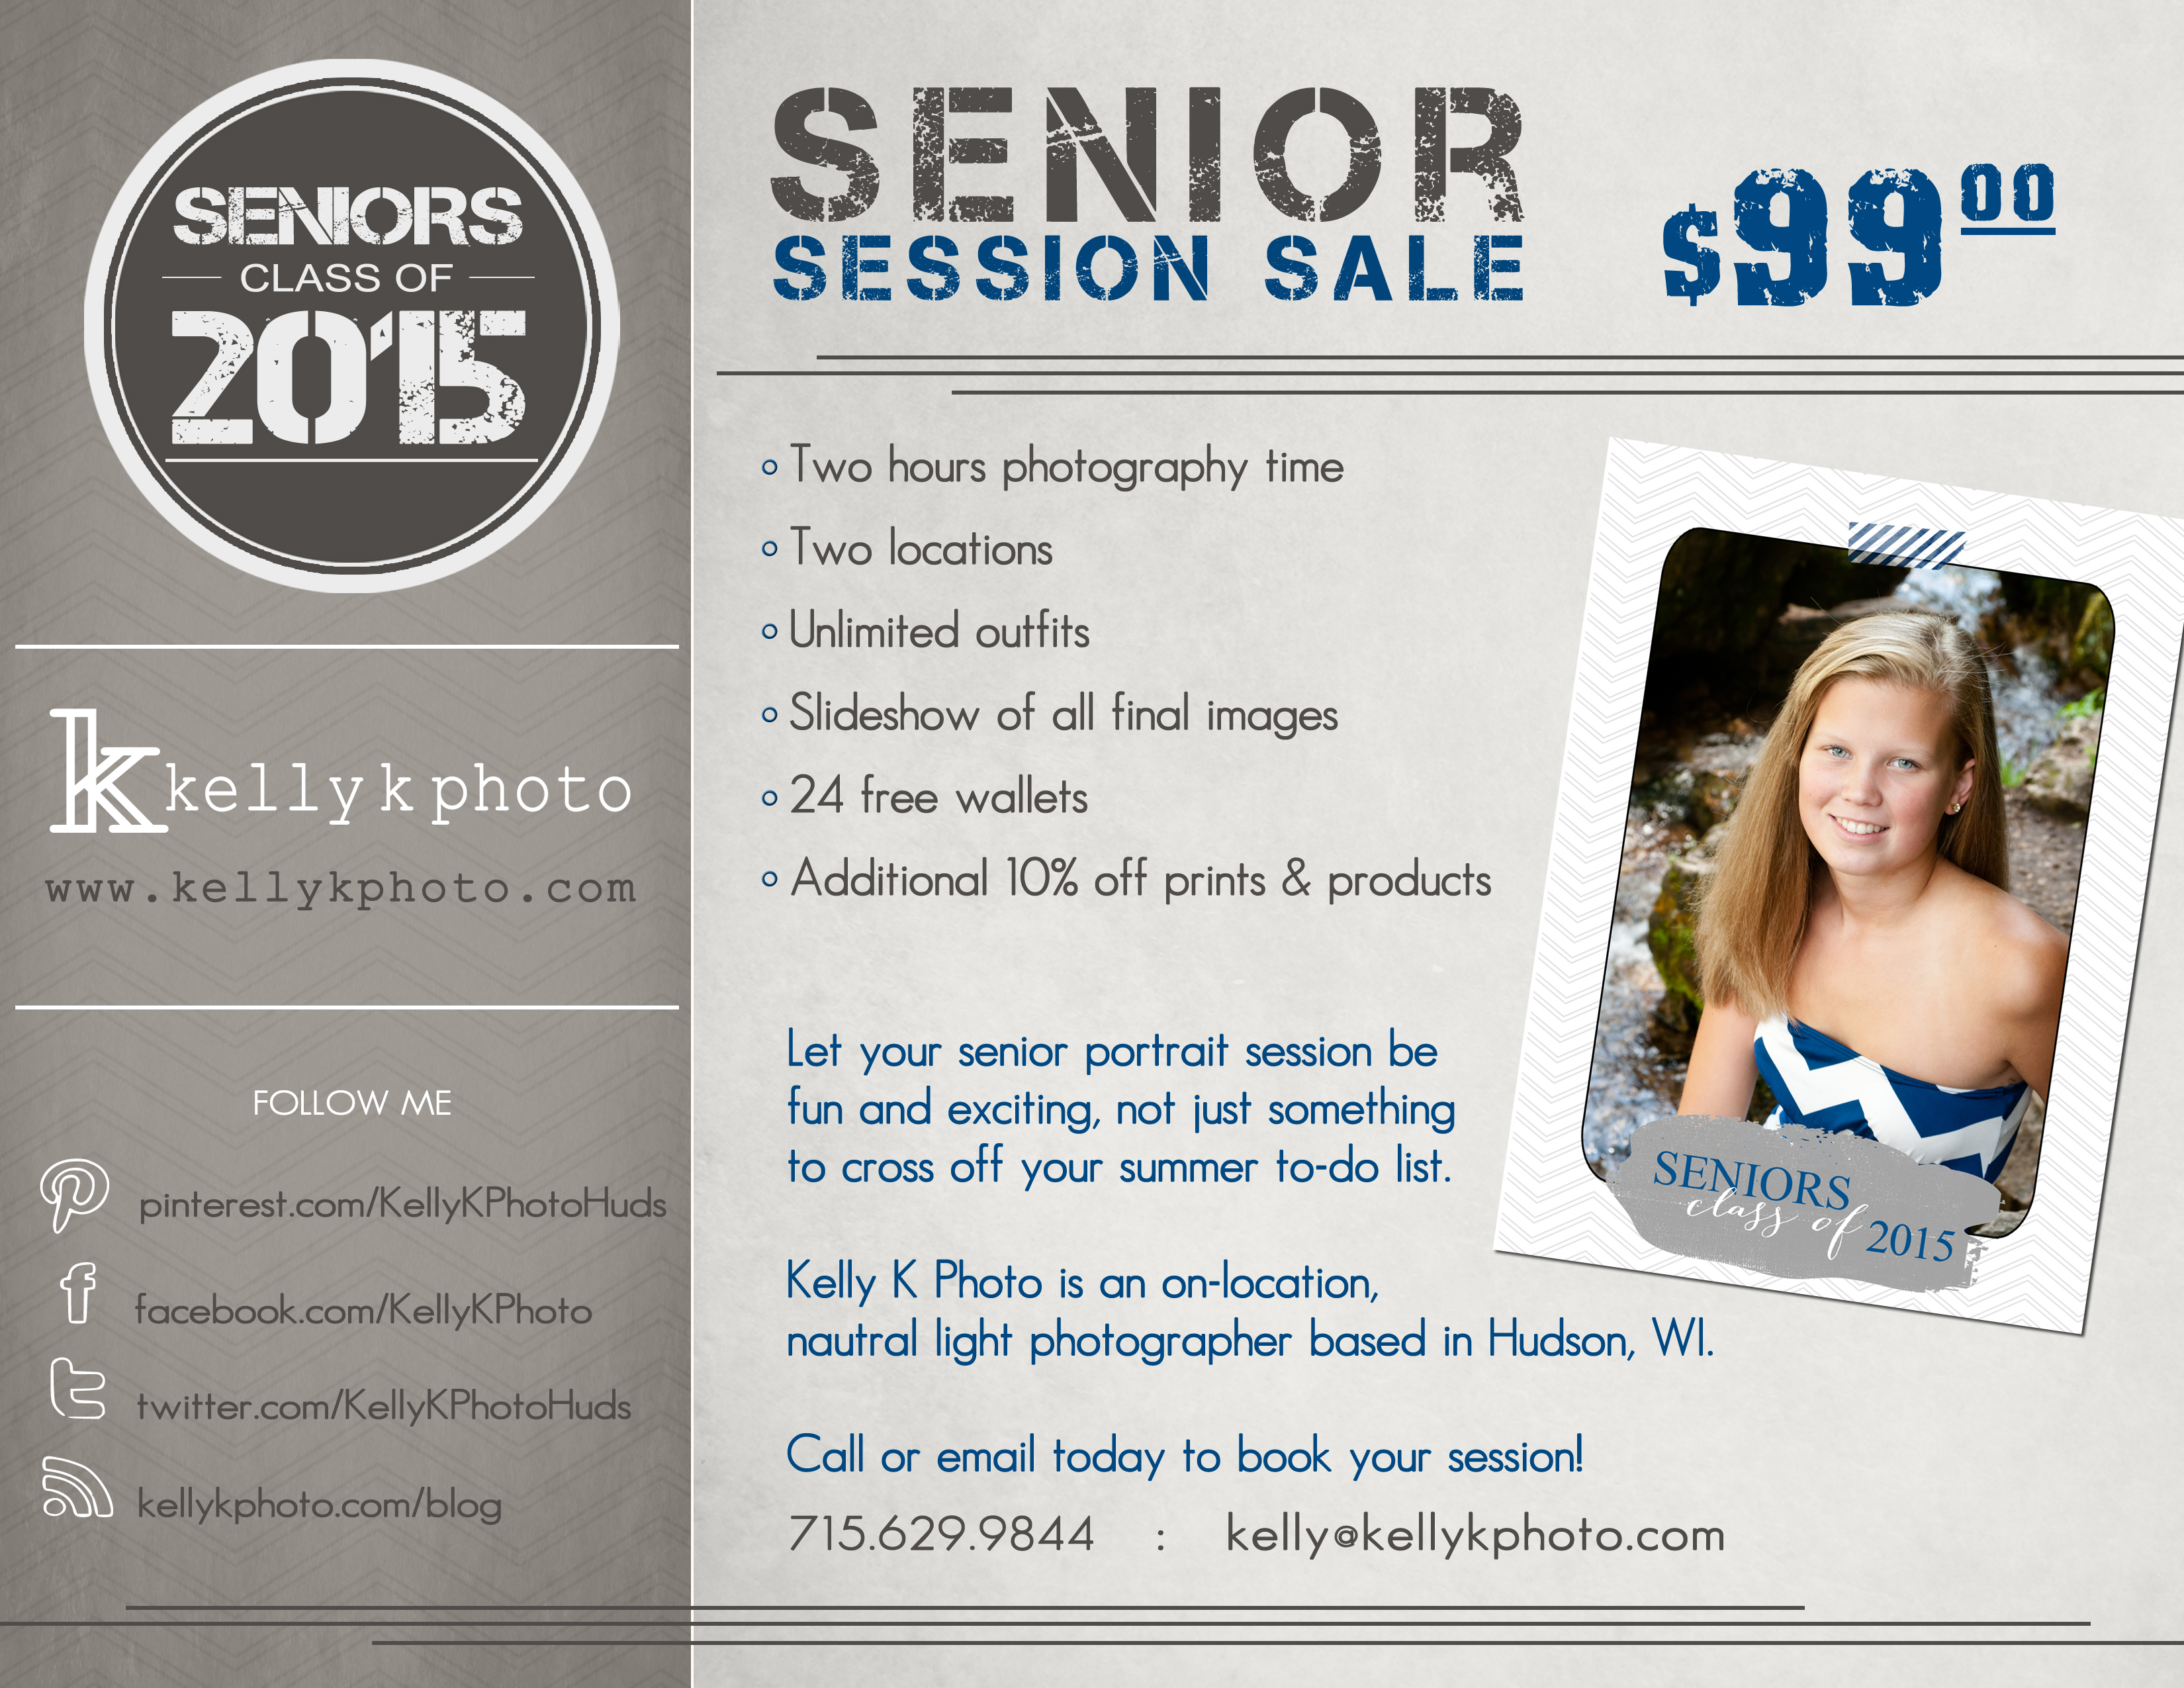 Kelly K Photo : Senior Session Sale : Class of 2015